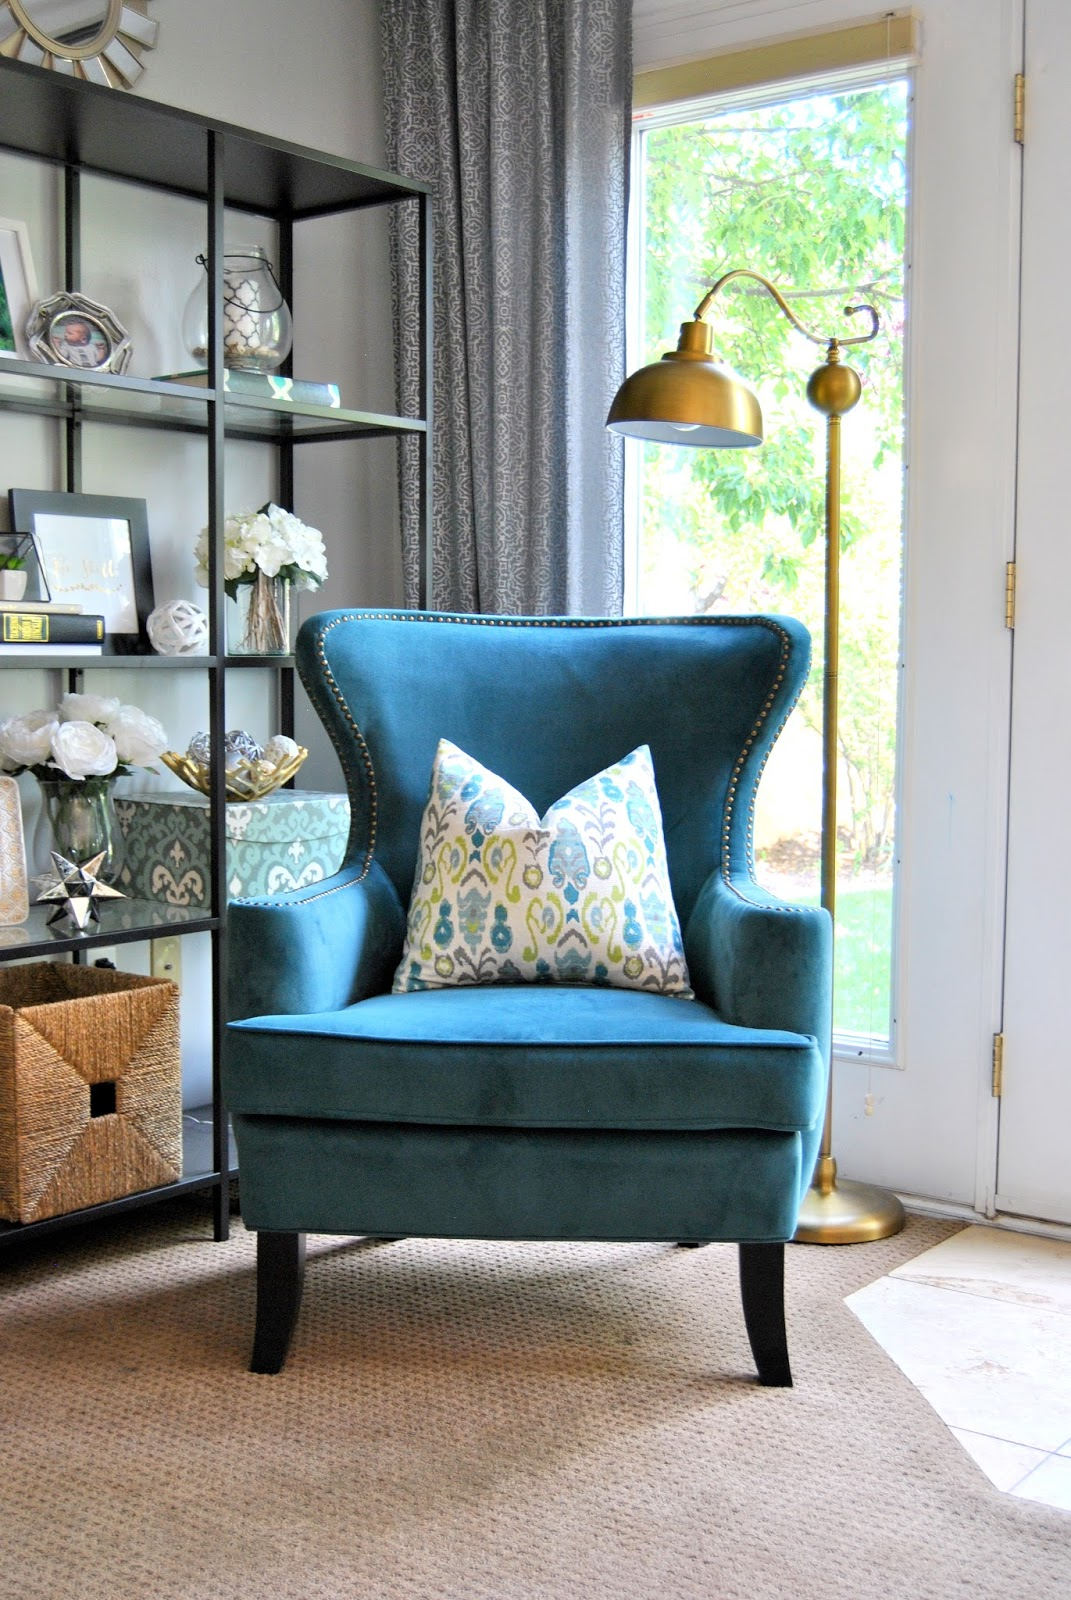 Turquoise Accent Chairs Fold Away Bed Chair Studio 7 Interior Design The Friday Five Club